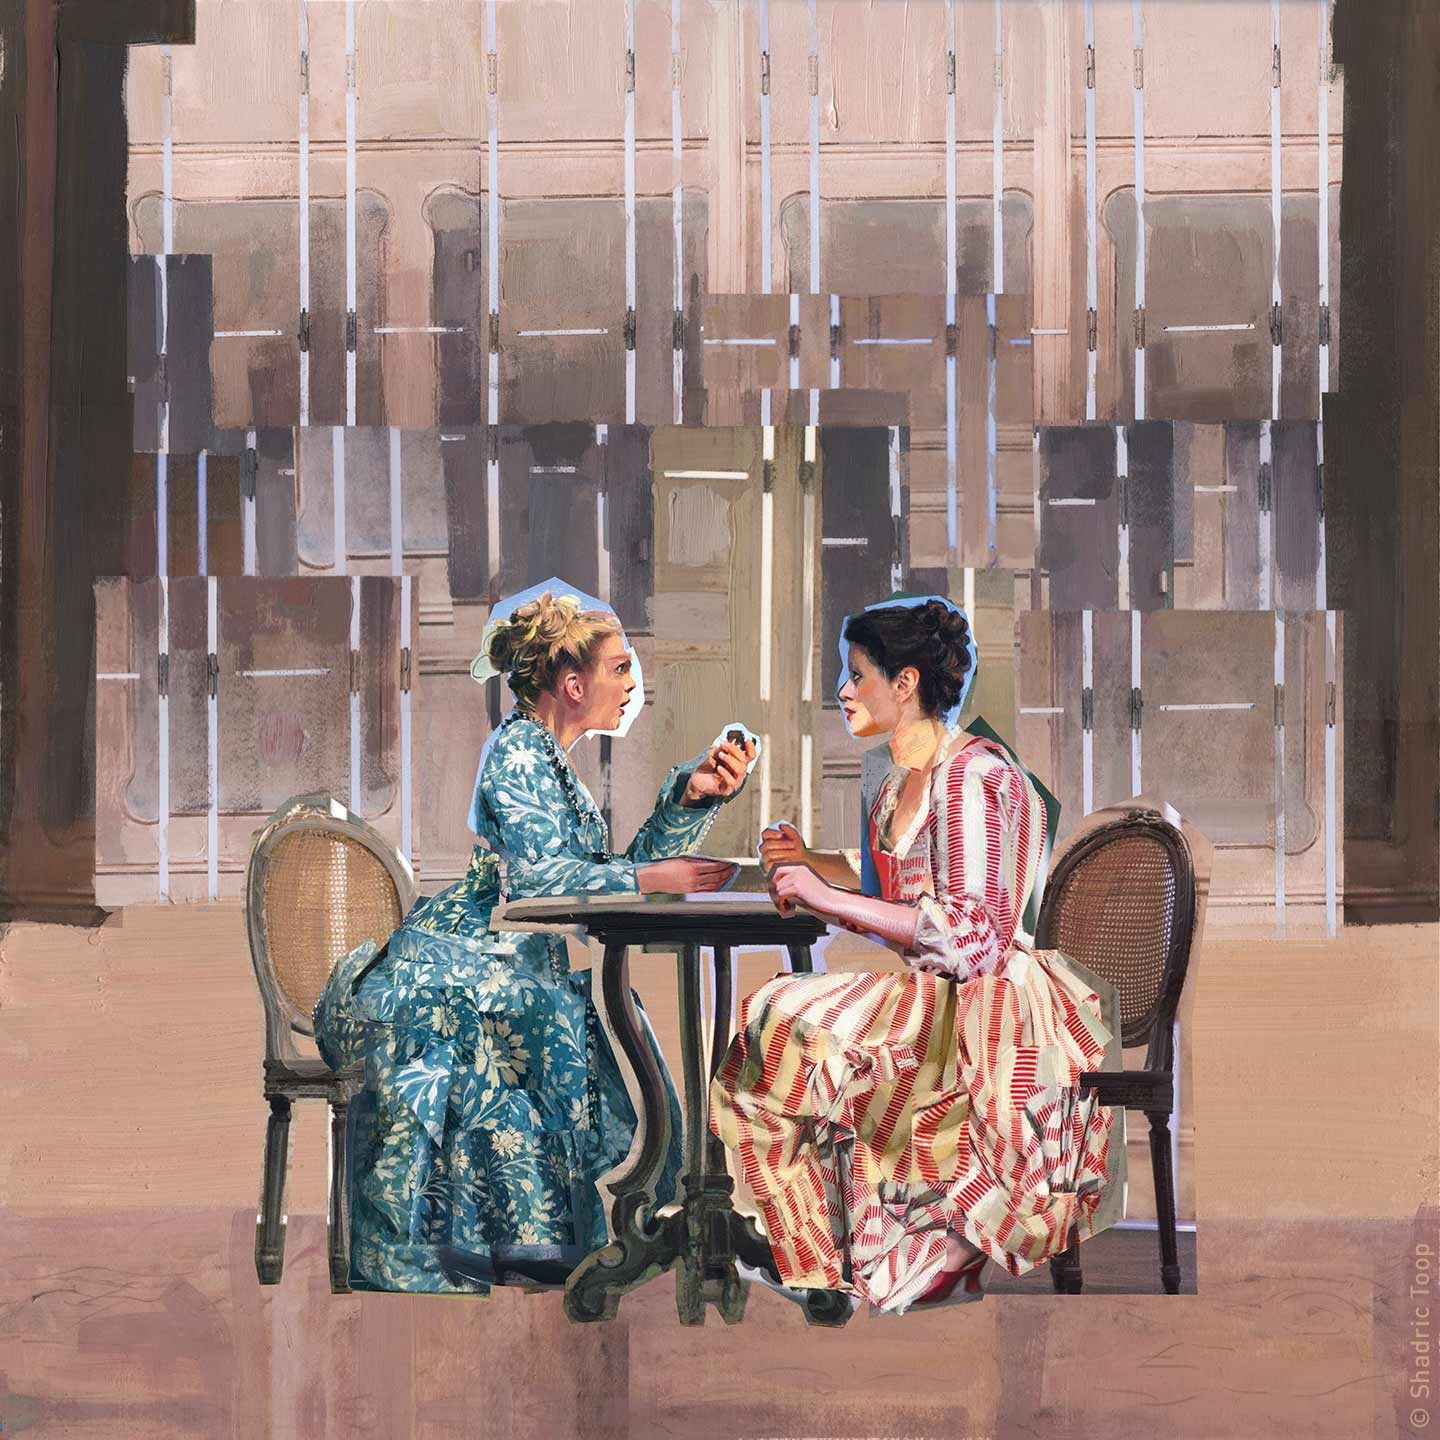 Cosi Fan Tutte showing Fiordiligi and Dorabella sitting at a table from the opera by Mozart - image used for the 2018 Glyndebourne Opera Cup - Painted Collage by Shadric Toop